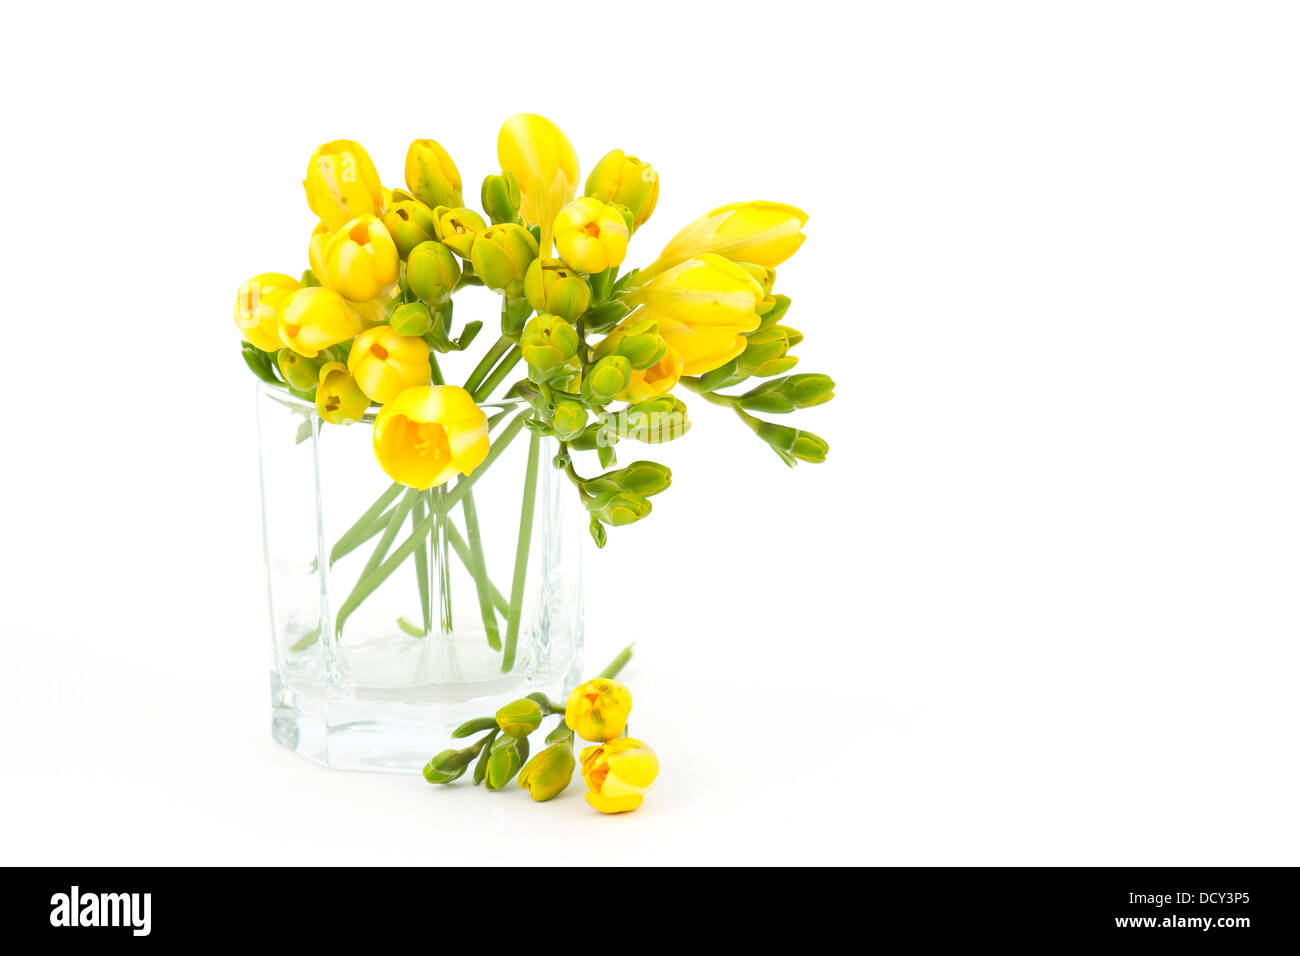 Yellow freesia flowers stock photos yellow freesia flowers stock yellow freesia flowers stock image izmirmasajfo